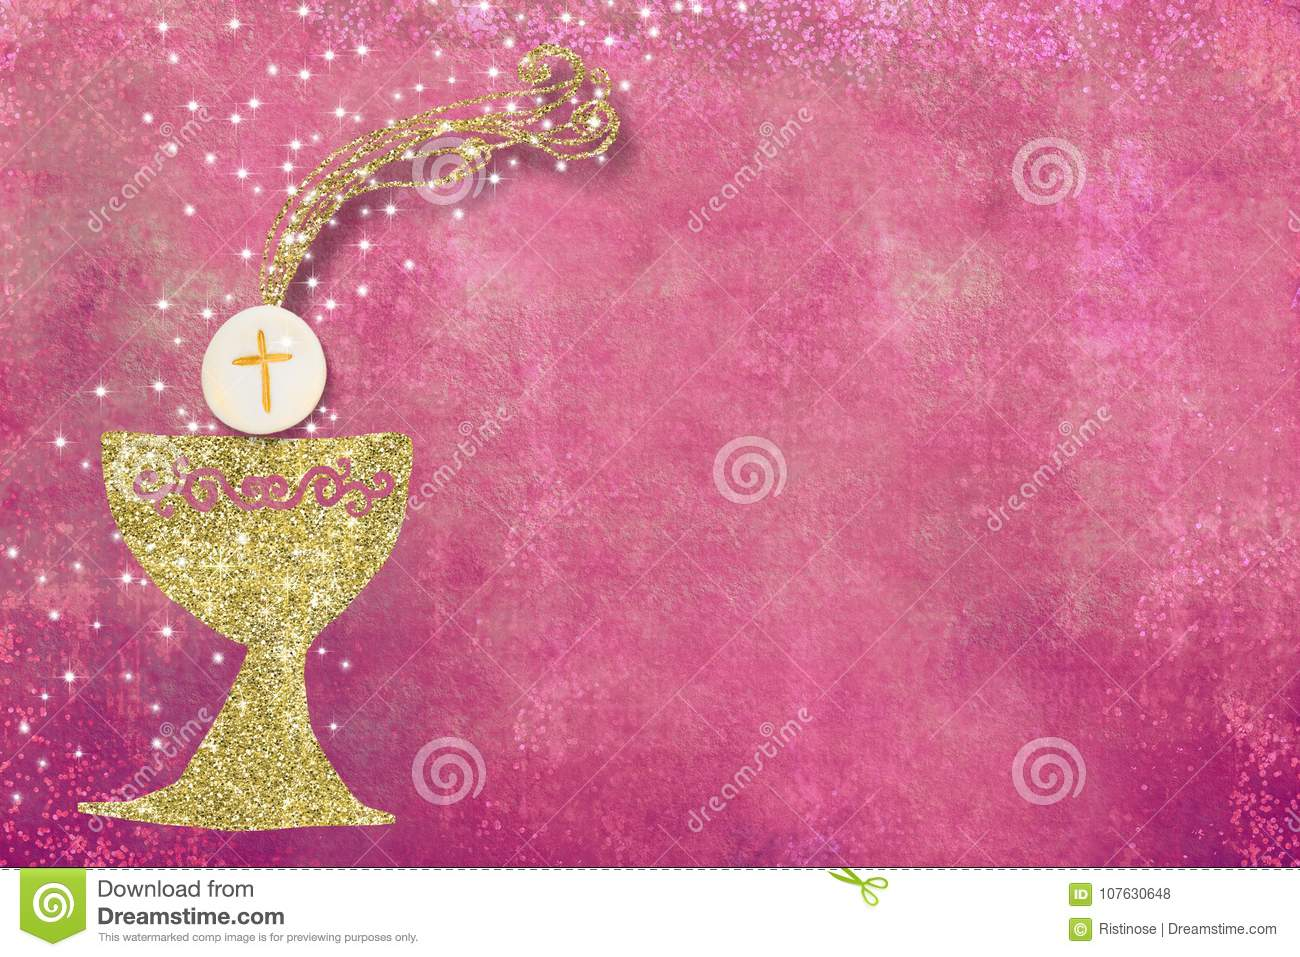 First Holy Communion invitation background